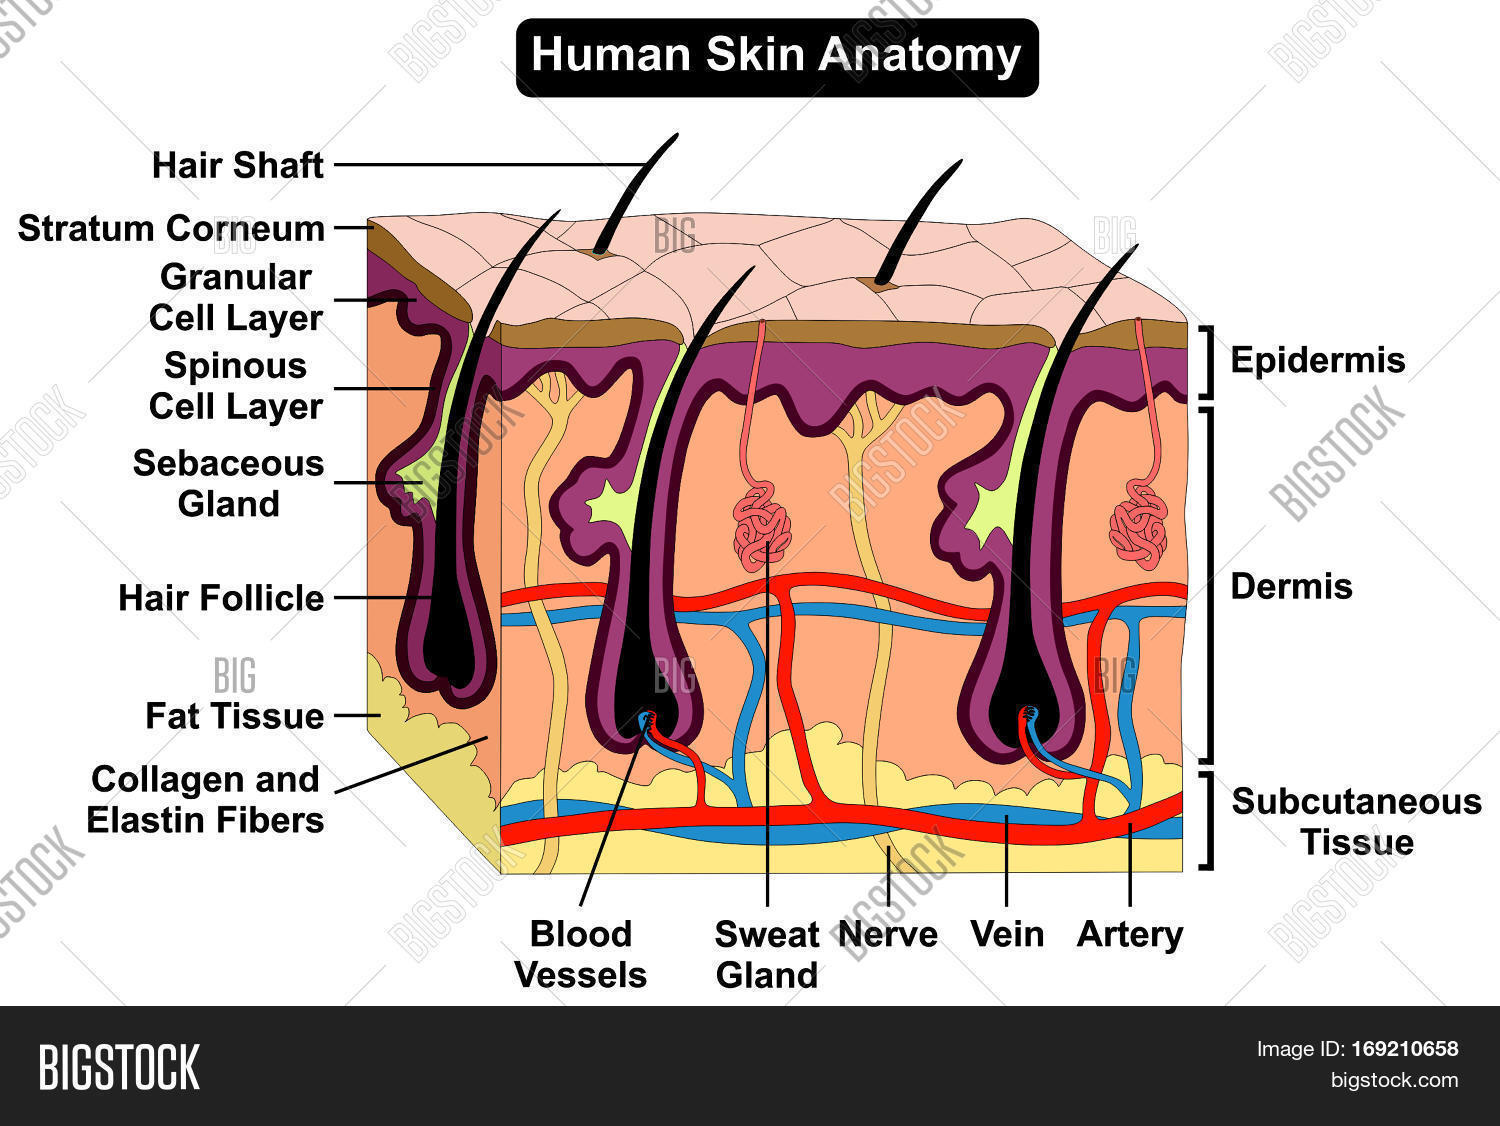 hight resolution of human skin anatomy cross section diagram anatomical figure with all layers epidermis dermis subcutaneous tissue hair